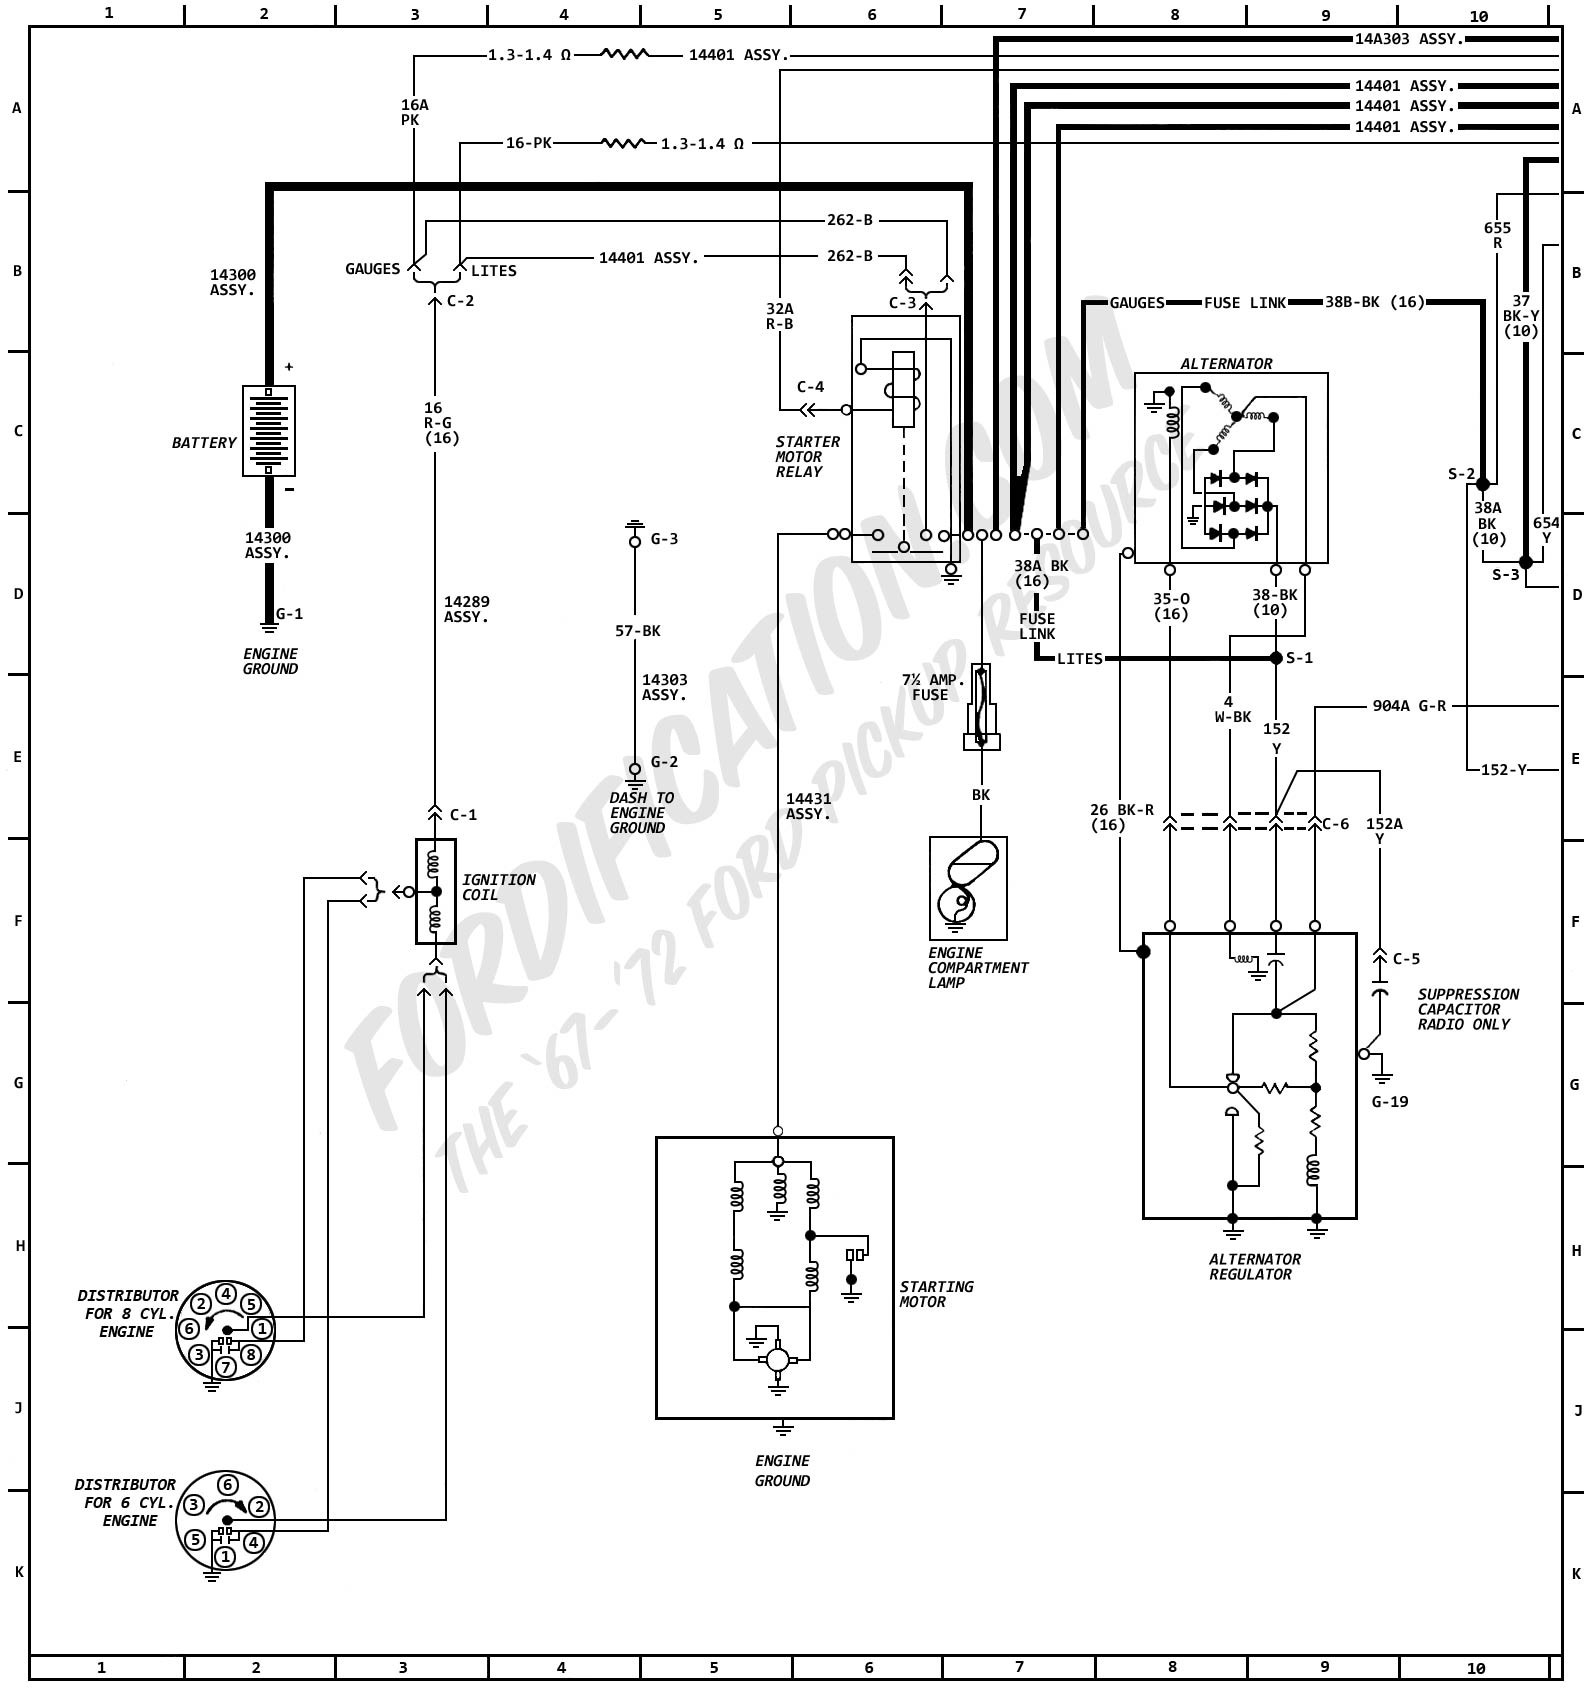 Wiring Diagram For 1972 Ford F100 Wiring Diagram Octavia A Octavia A Musikami It